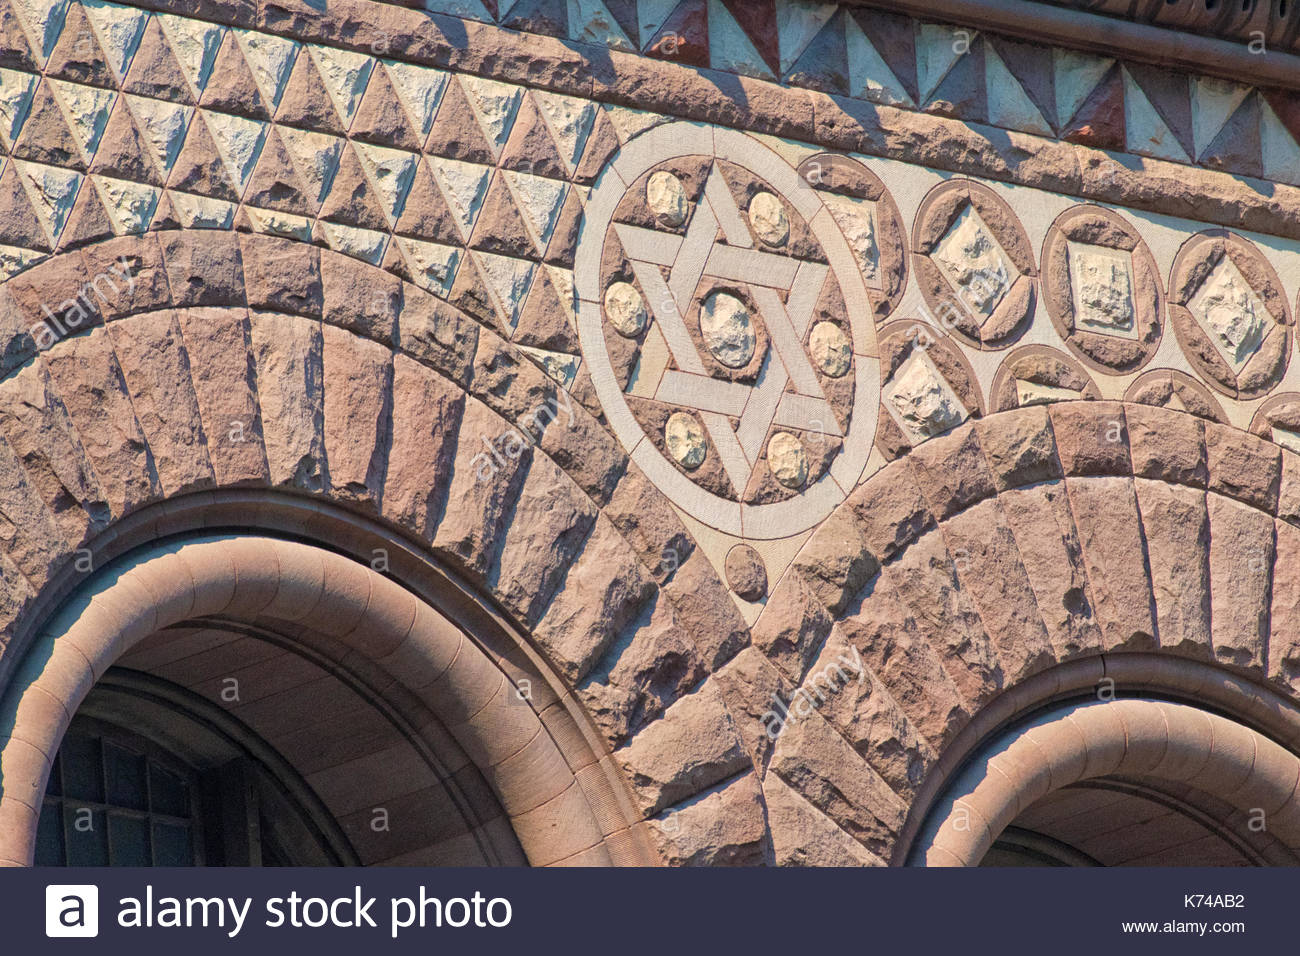 Old City Hall Richardsonian Romanesque Revival architectural details. David star and arches in the facade.  The red stone old building is a tourist at - Stock Image